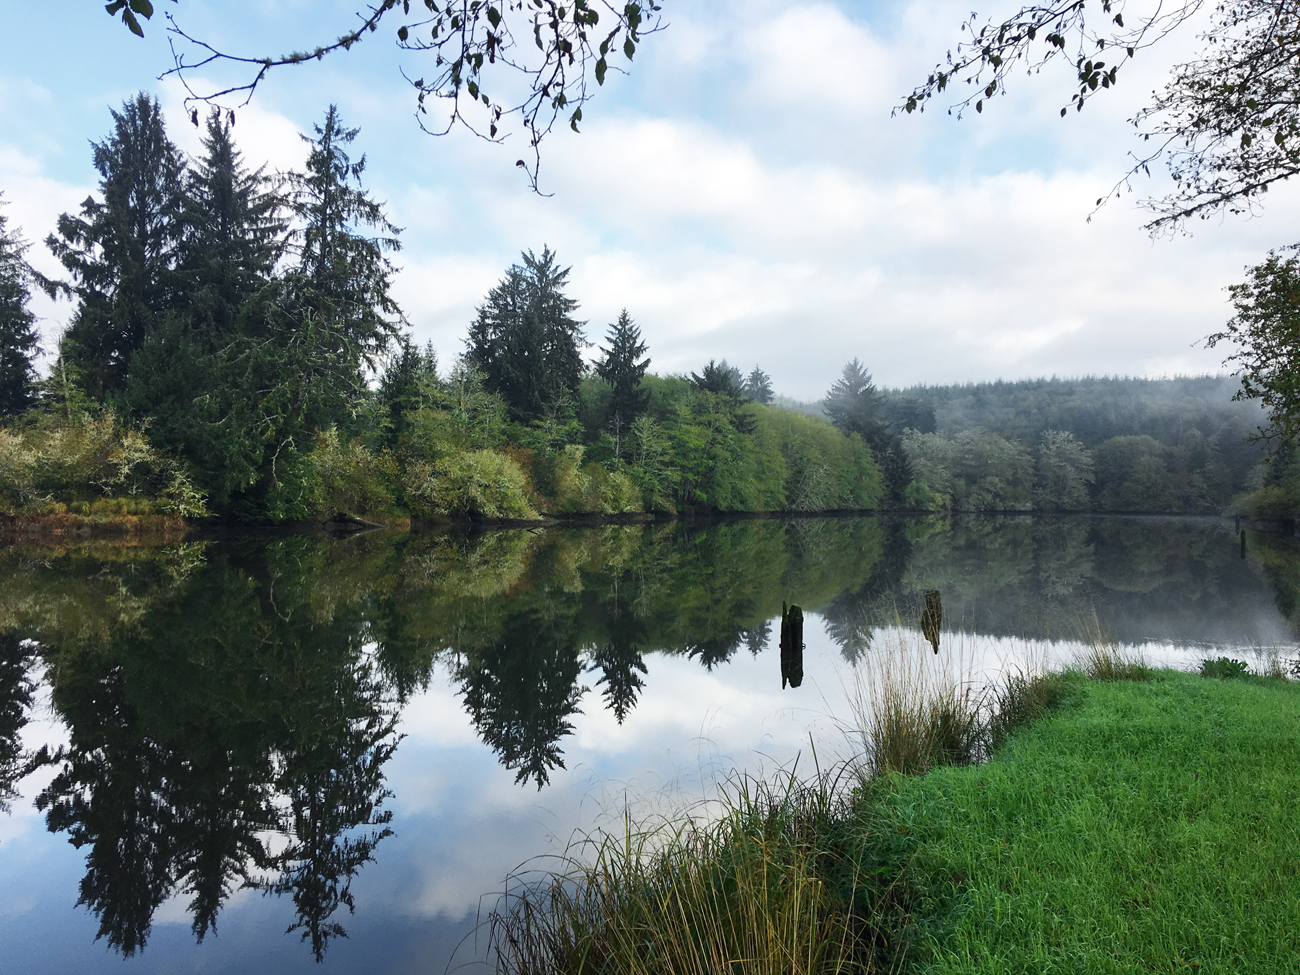 Reflections of evergreens in the glassy waters of the Hoquiam River adjacent to the Hoquaim River RV Park